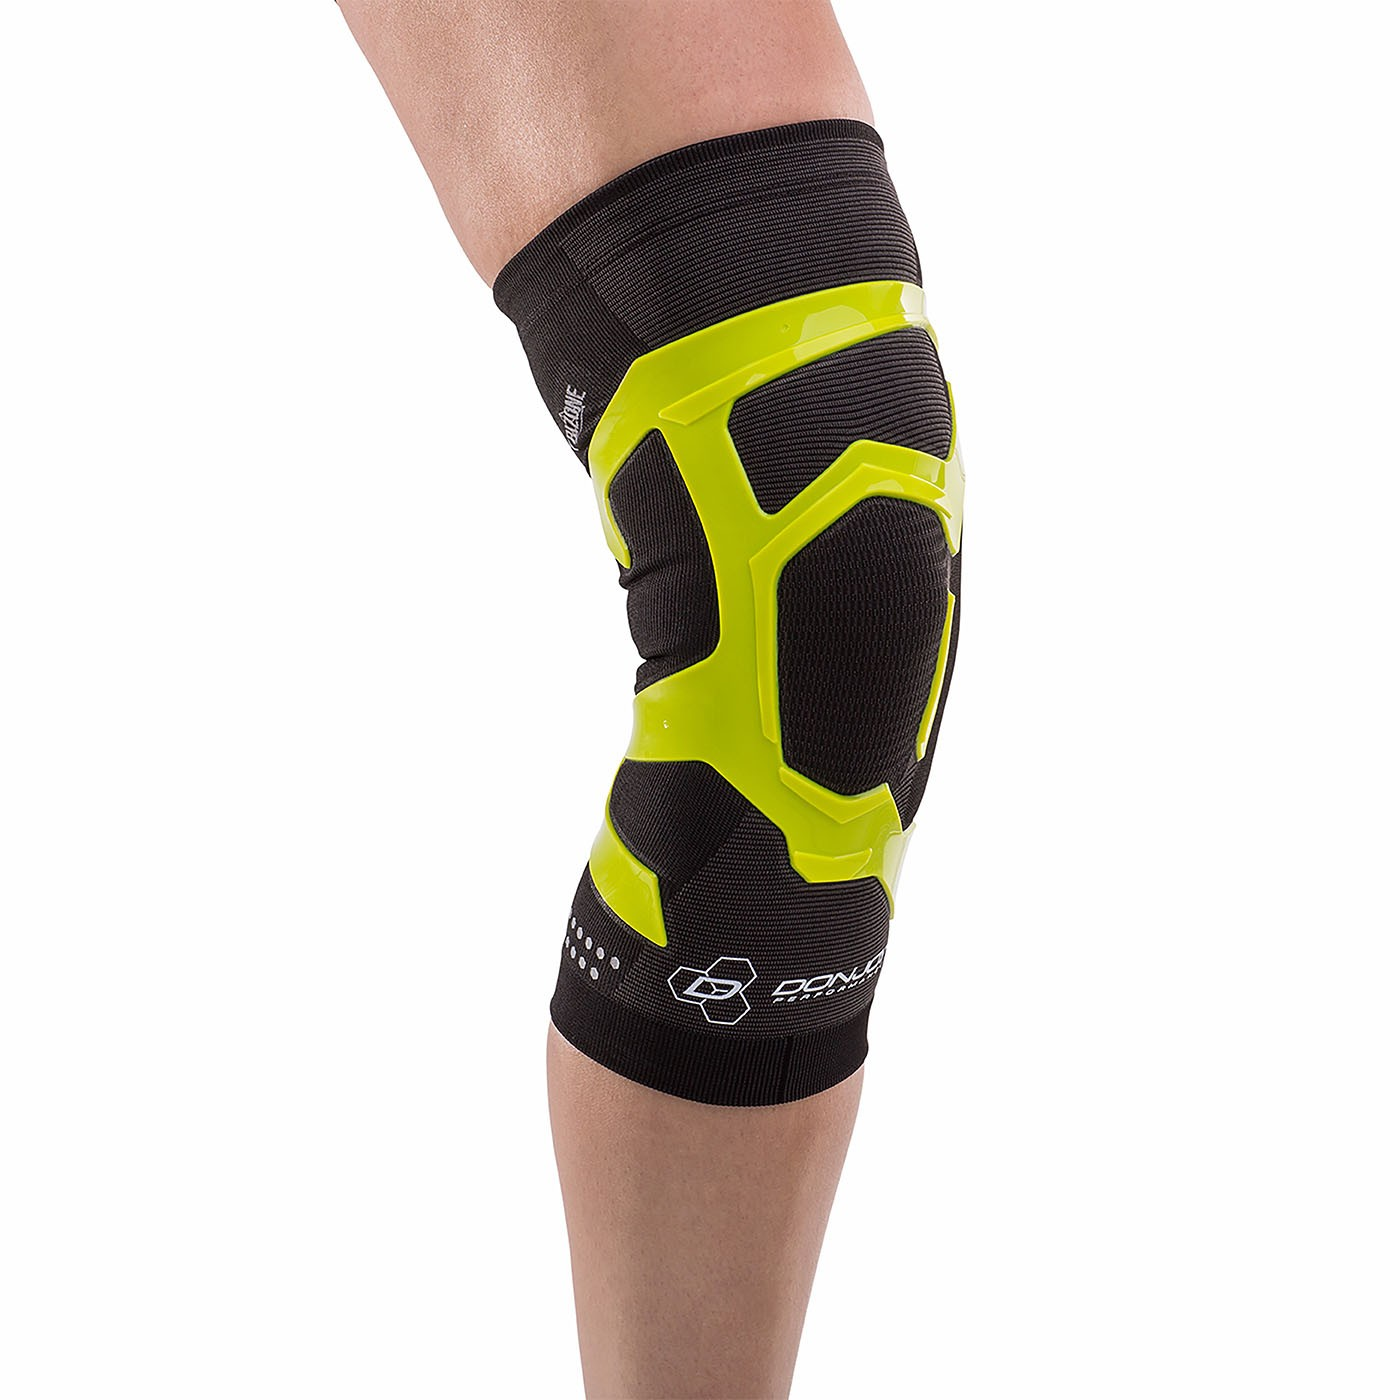 Trizone Knee Support - Slime - Front